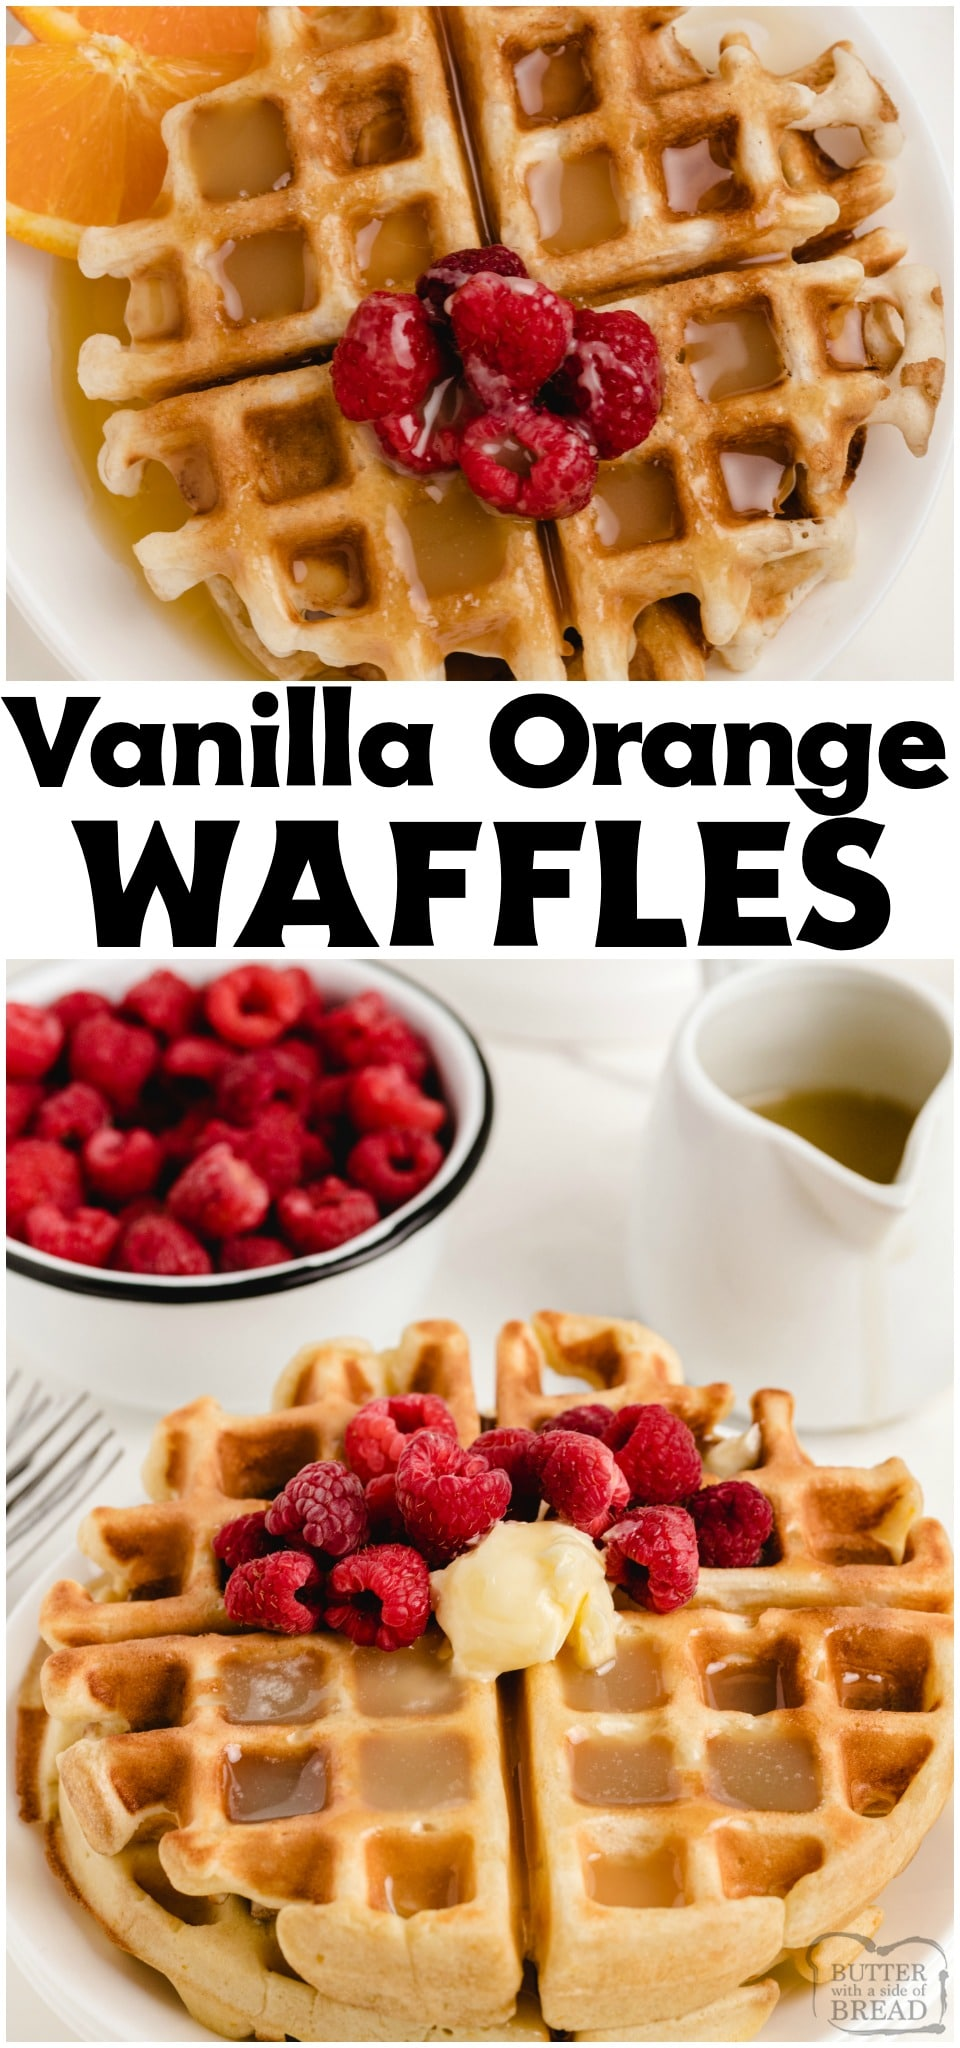 Vanilla Orange Waffles are a sweet citrus waffle served with homemade vanilla butter syrup. Fantastic variation on a traditional waffle recipe that everyone loves! #waffles #vanilla #orange #citrus #breakfast #homemade #recipe from BUTTER WITH A SIDE OF BREAD